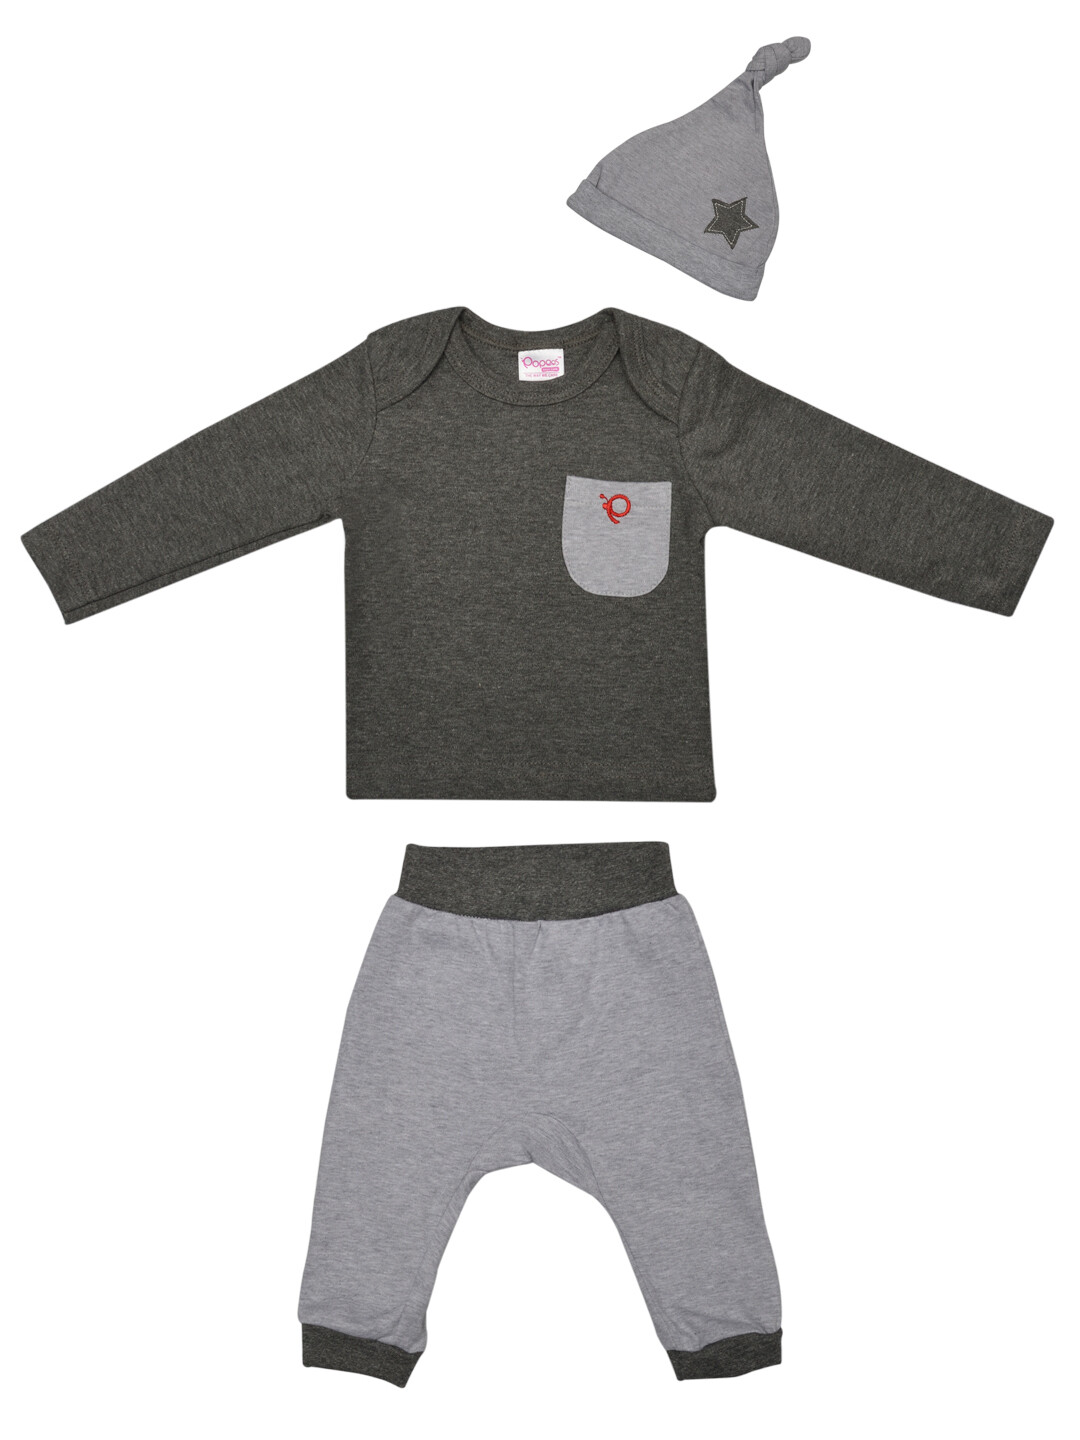 Melvin Charcoal Full Sleeves Round Neck T-shirt with Lounge Pant and Knot Hat M (6-12 Months)